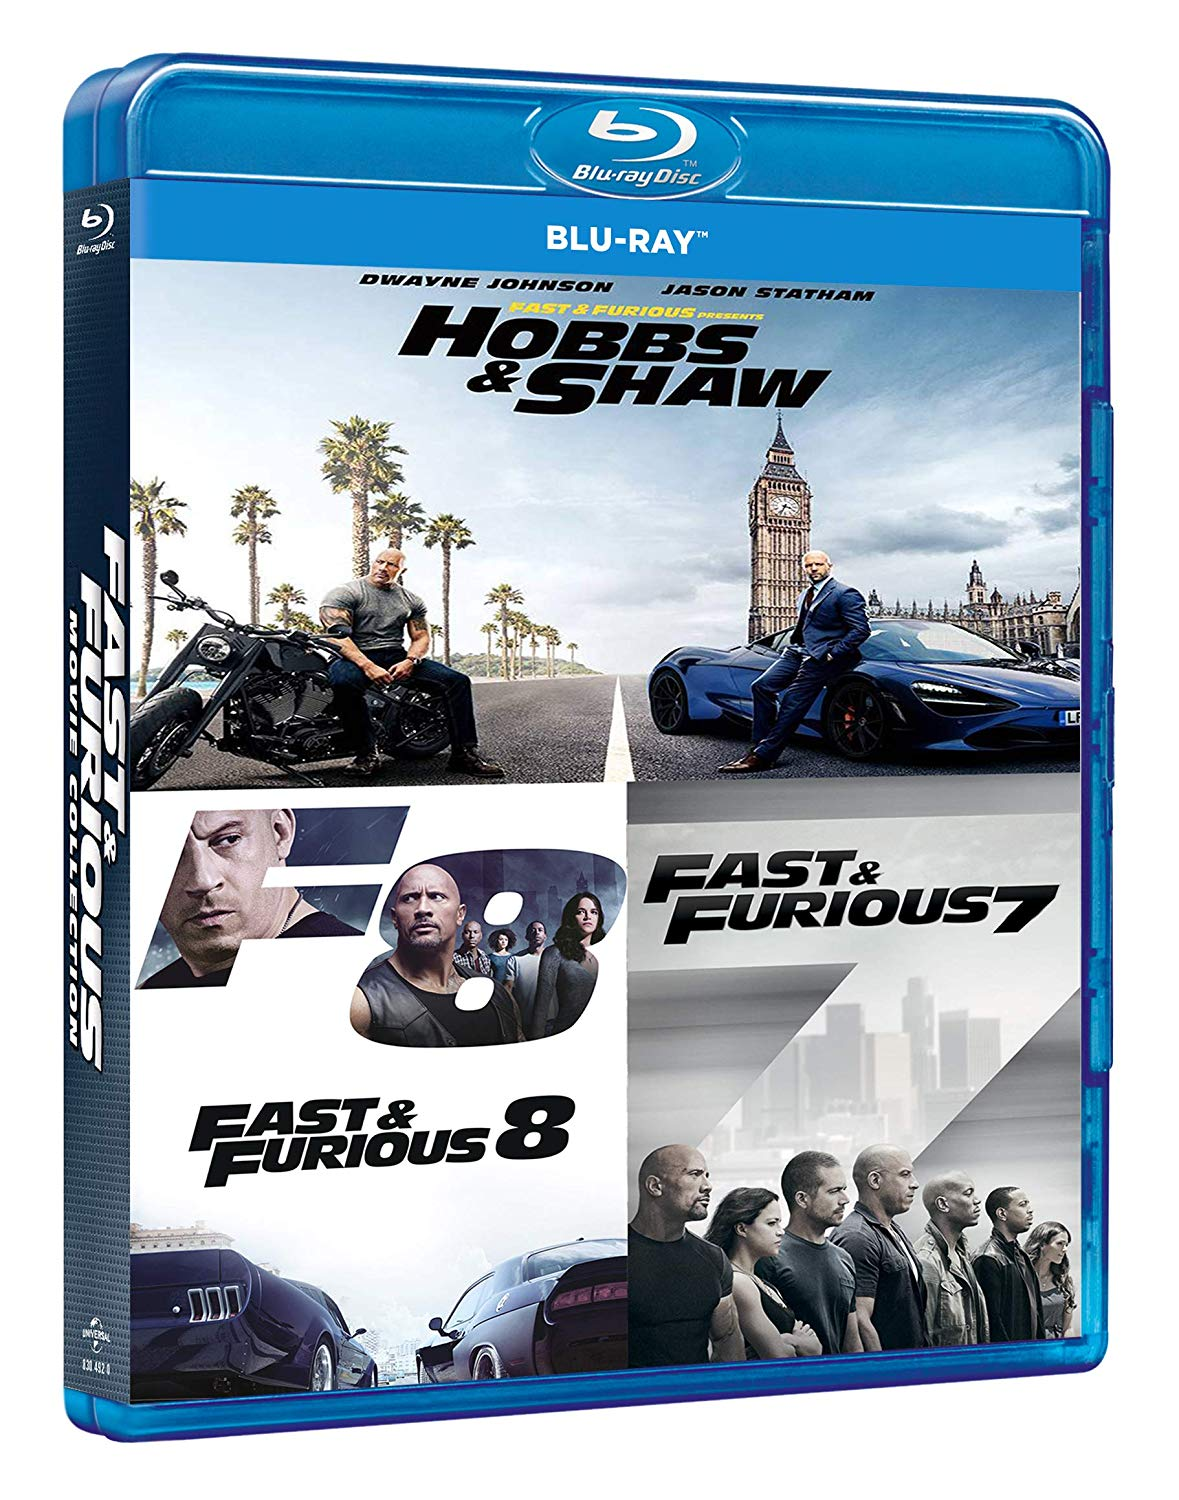 COF.FAST & FURIOUS HOBBS & SHAW COLLECTION (3 BLU-RAY)